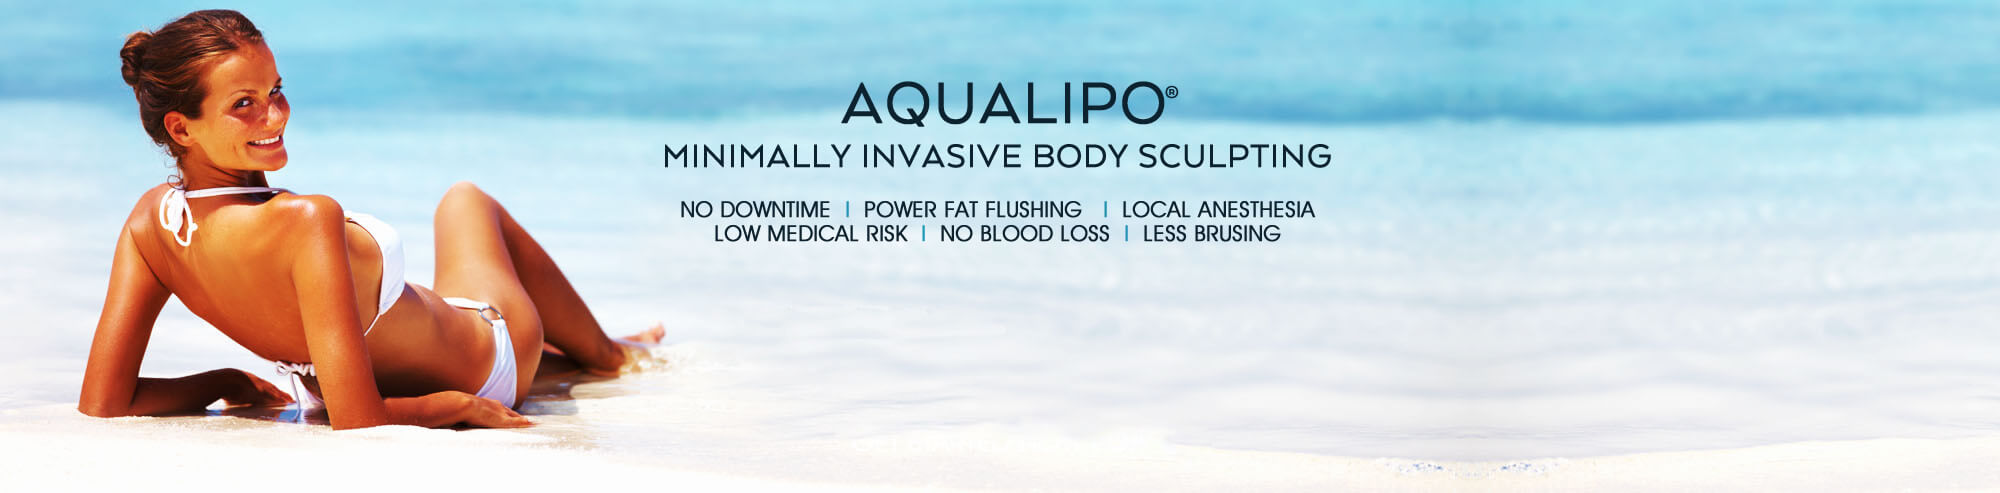 AQUALIPO MINIMALLY  - INVASIVE BODY SCULPTING NO DOWNTIME | POWER FAT FLUSHING | LOCAL ANESTHESIA | LOW MEDICAL RISK | NO BLOOD LOSS | LESS BRUSING